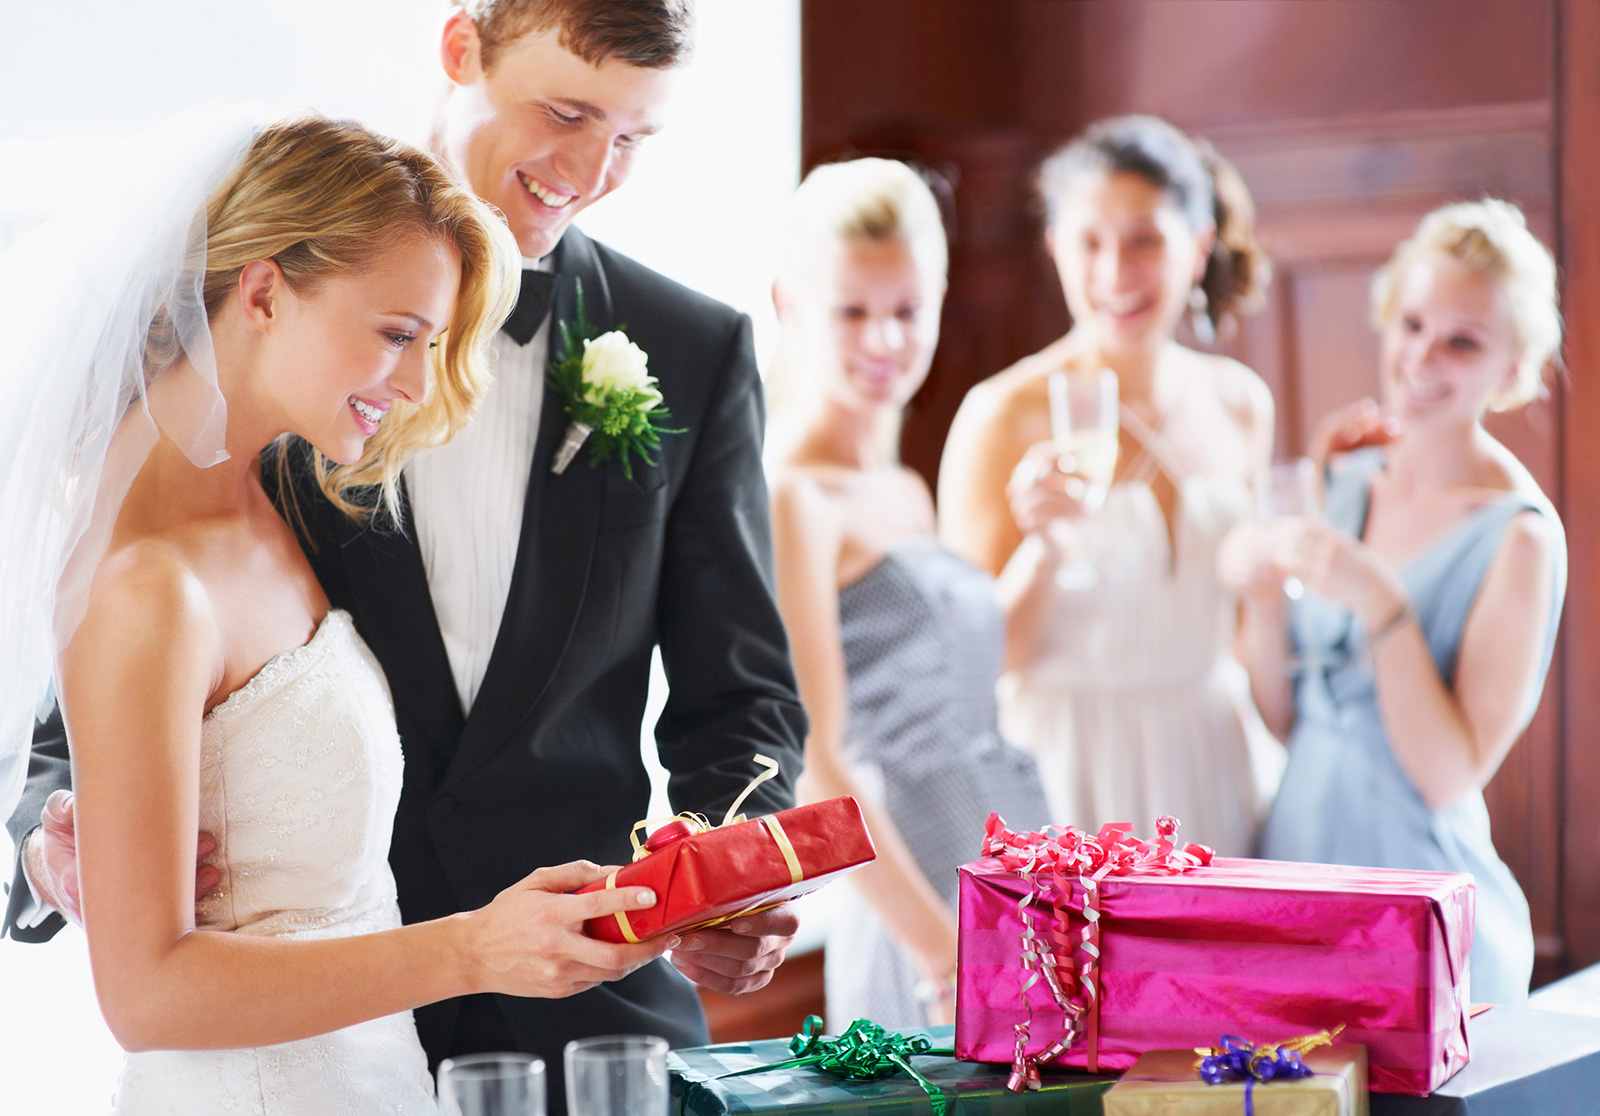 Wedding Gifts From The Groom To The Bride Lovetoknow